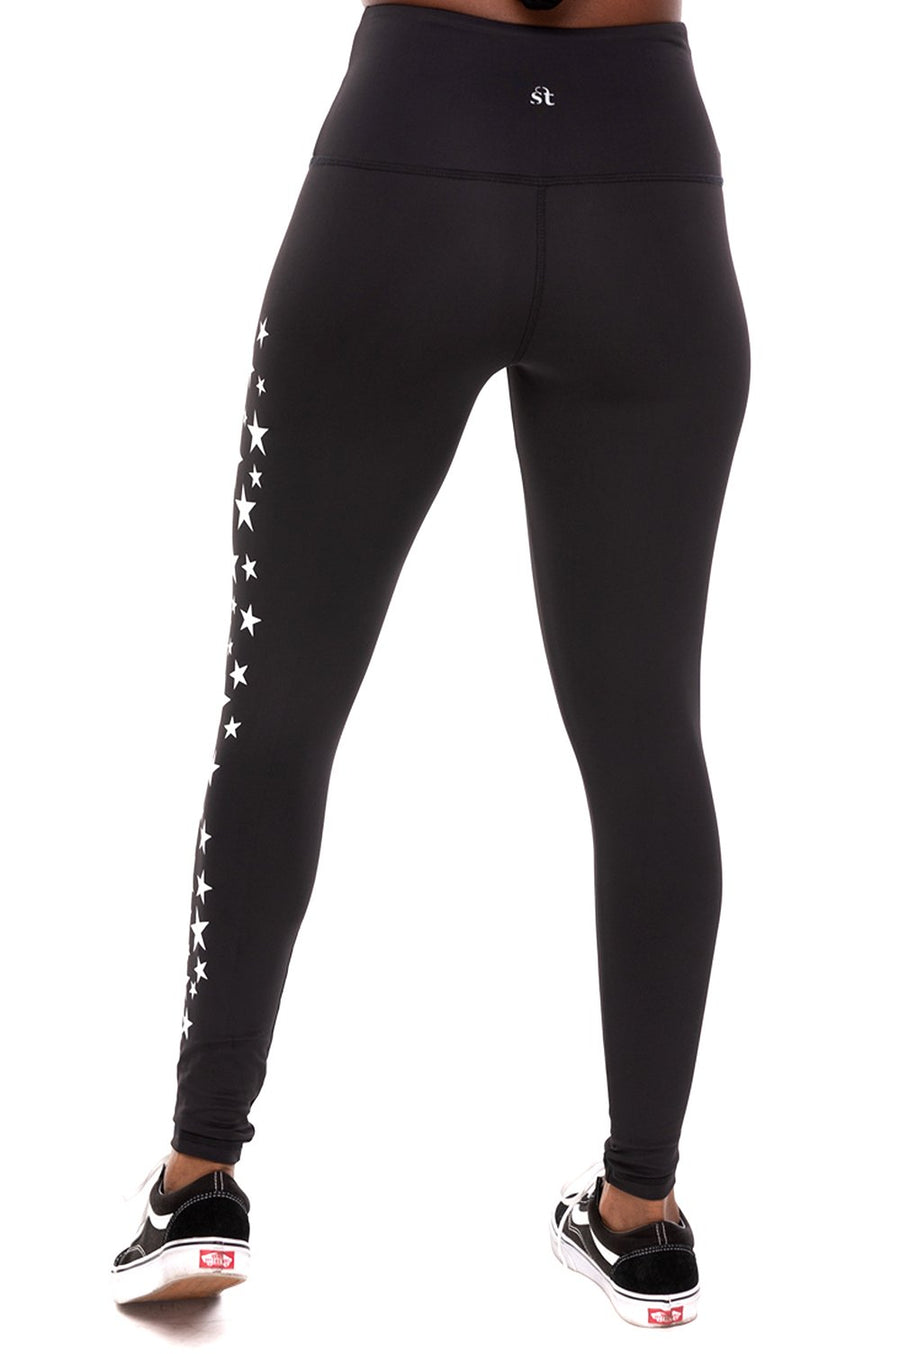 Star Cluster High Waist Ankle Legging - Black/White Stars